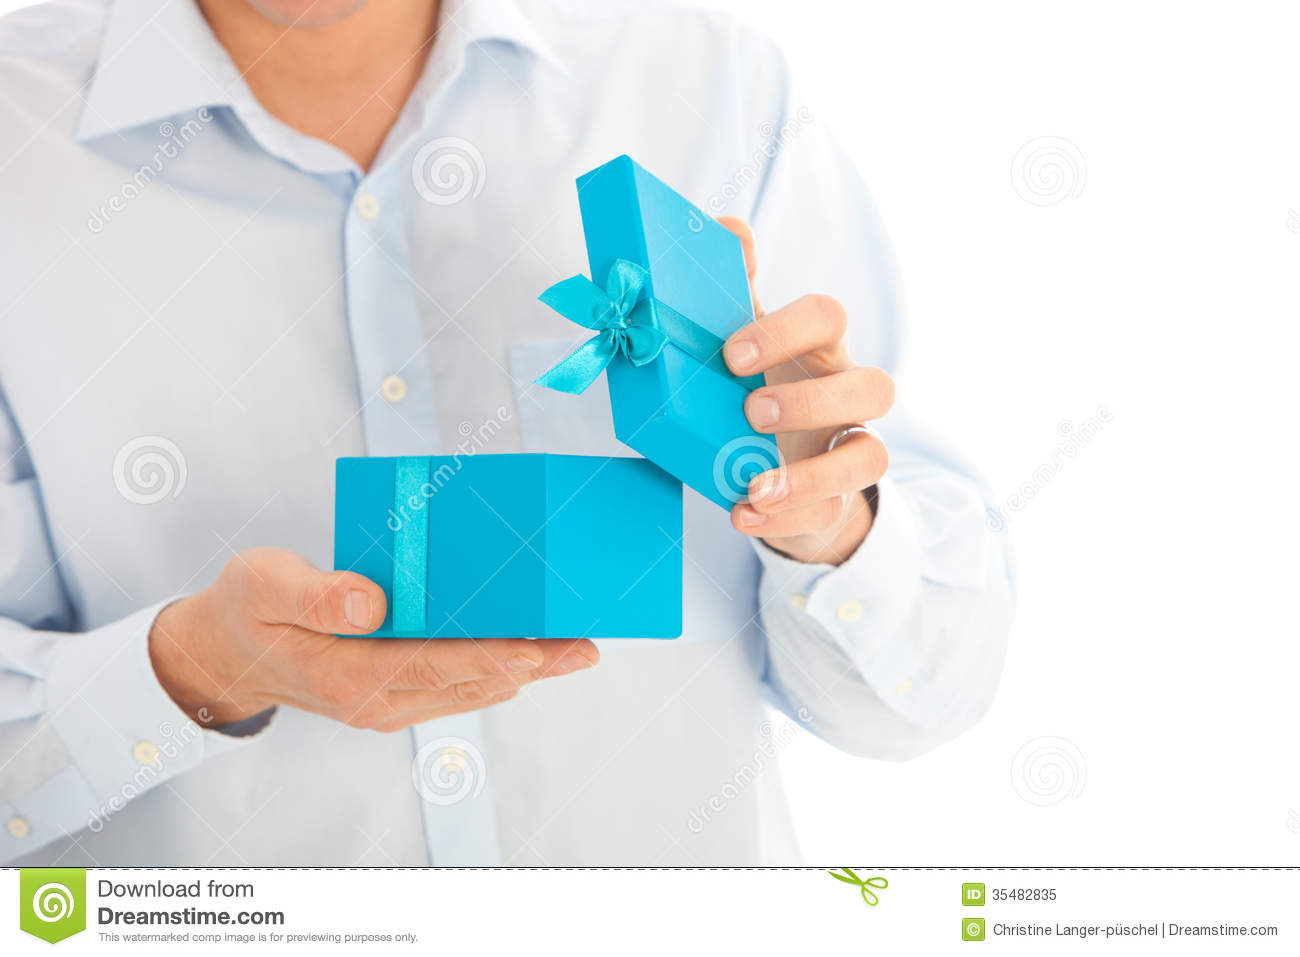 Man opening a birthday or Christmas gift